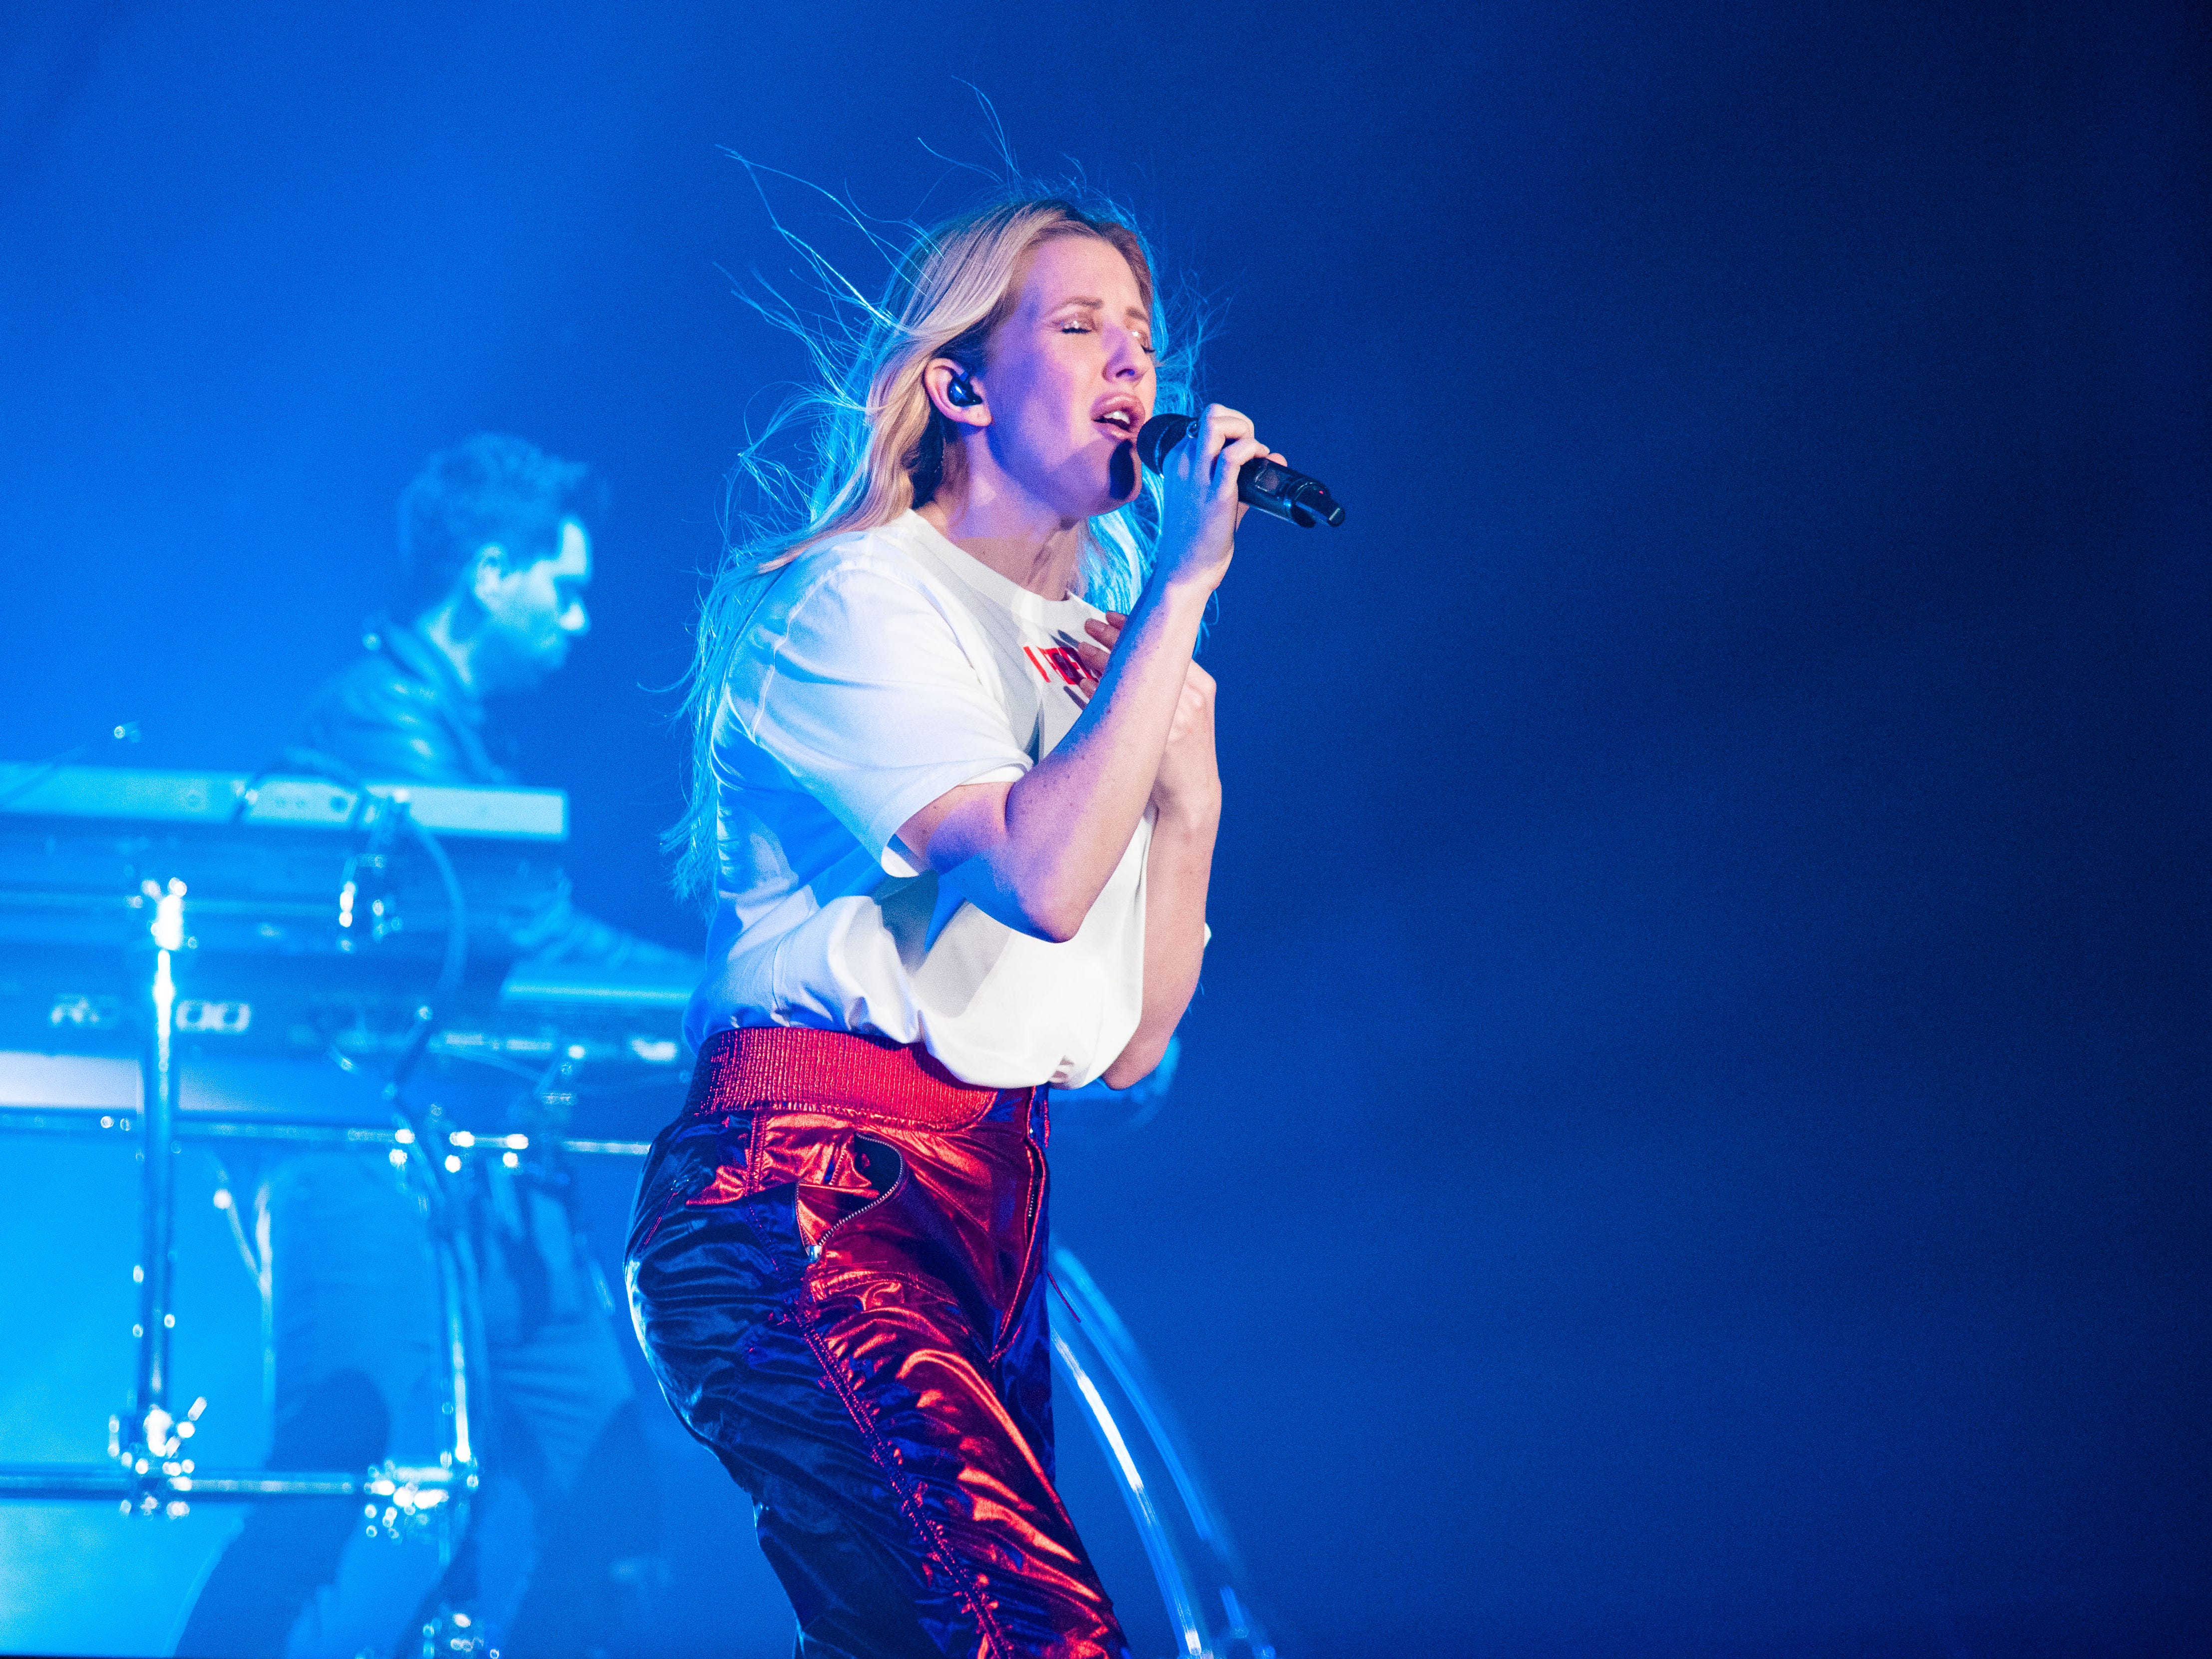 LONDON, ENGLAND - DECEMBER 20:  Ellie Goulding performs at the Ellie Goulding for Streets of London fundraiser at Wembley Arena on December 20, 2018 in London, England.  (Photo by Joseph Okpako/WireImage) ORG XMIT: 775272369 ORIG FILE ID: 1074478142